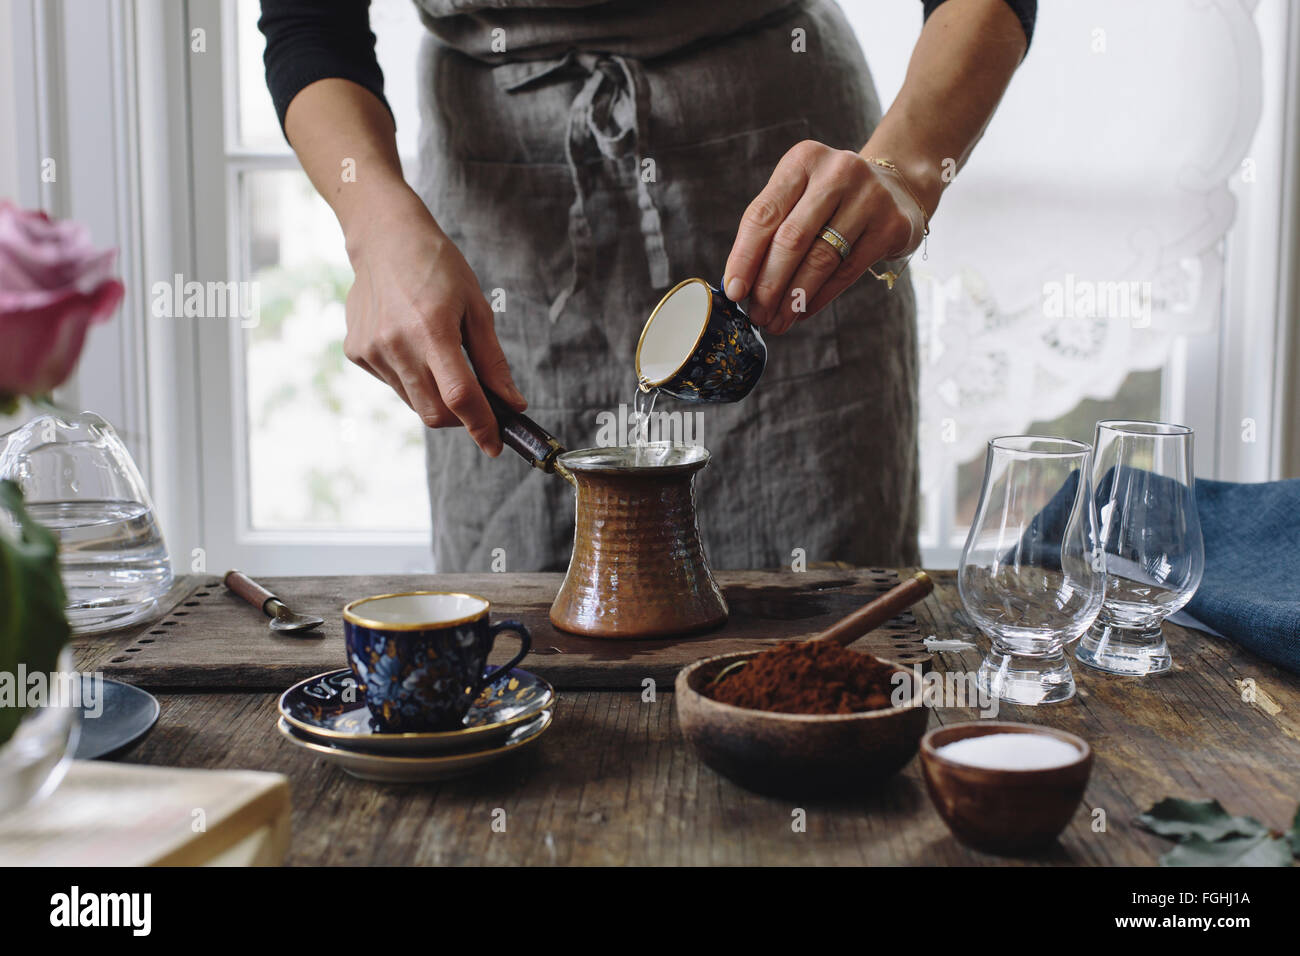 A woman is pouring water into a small pot to make Turkish Coffee. - Stock Image